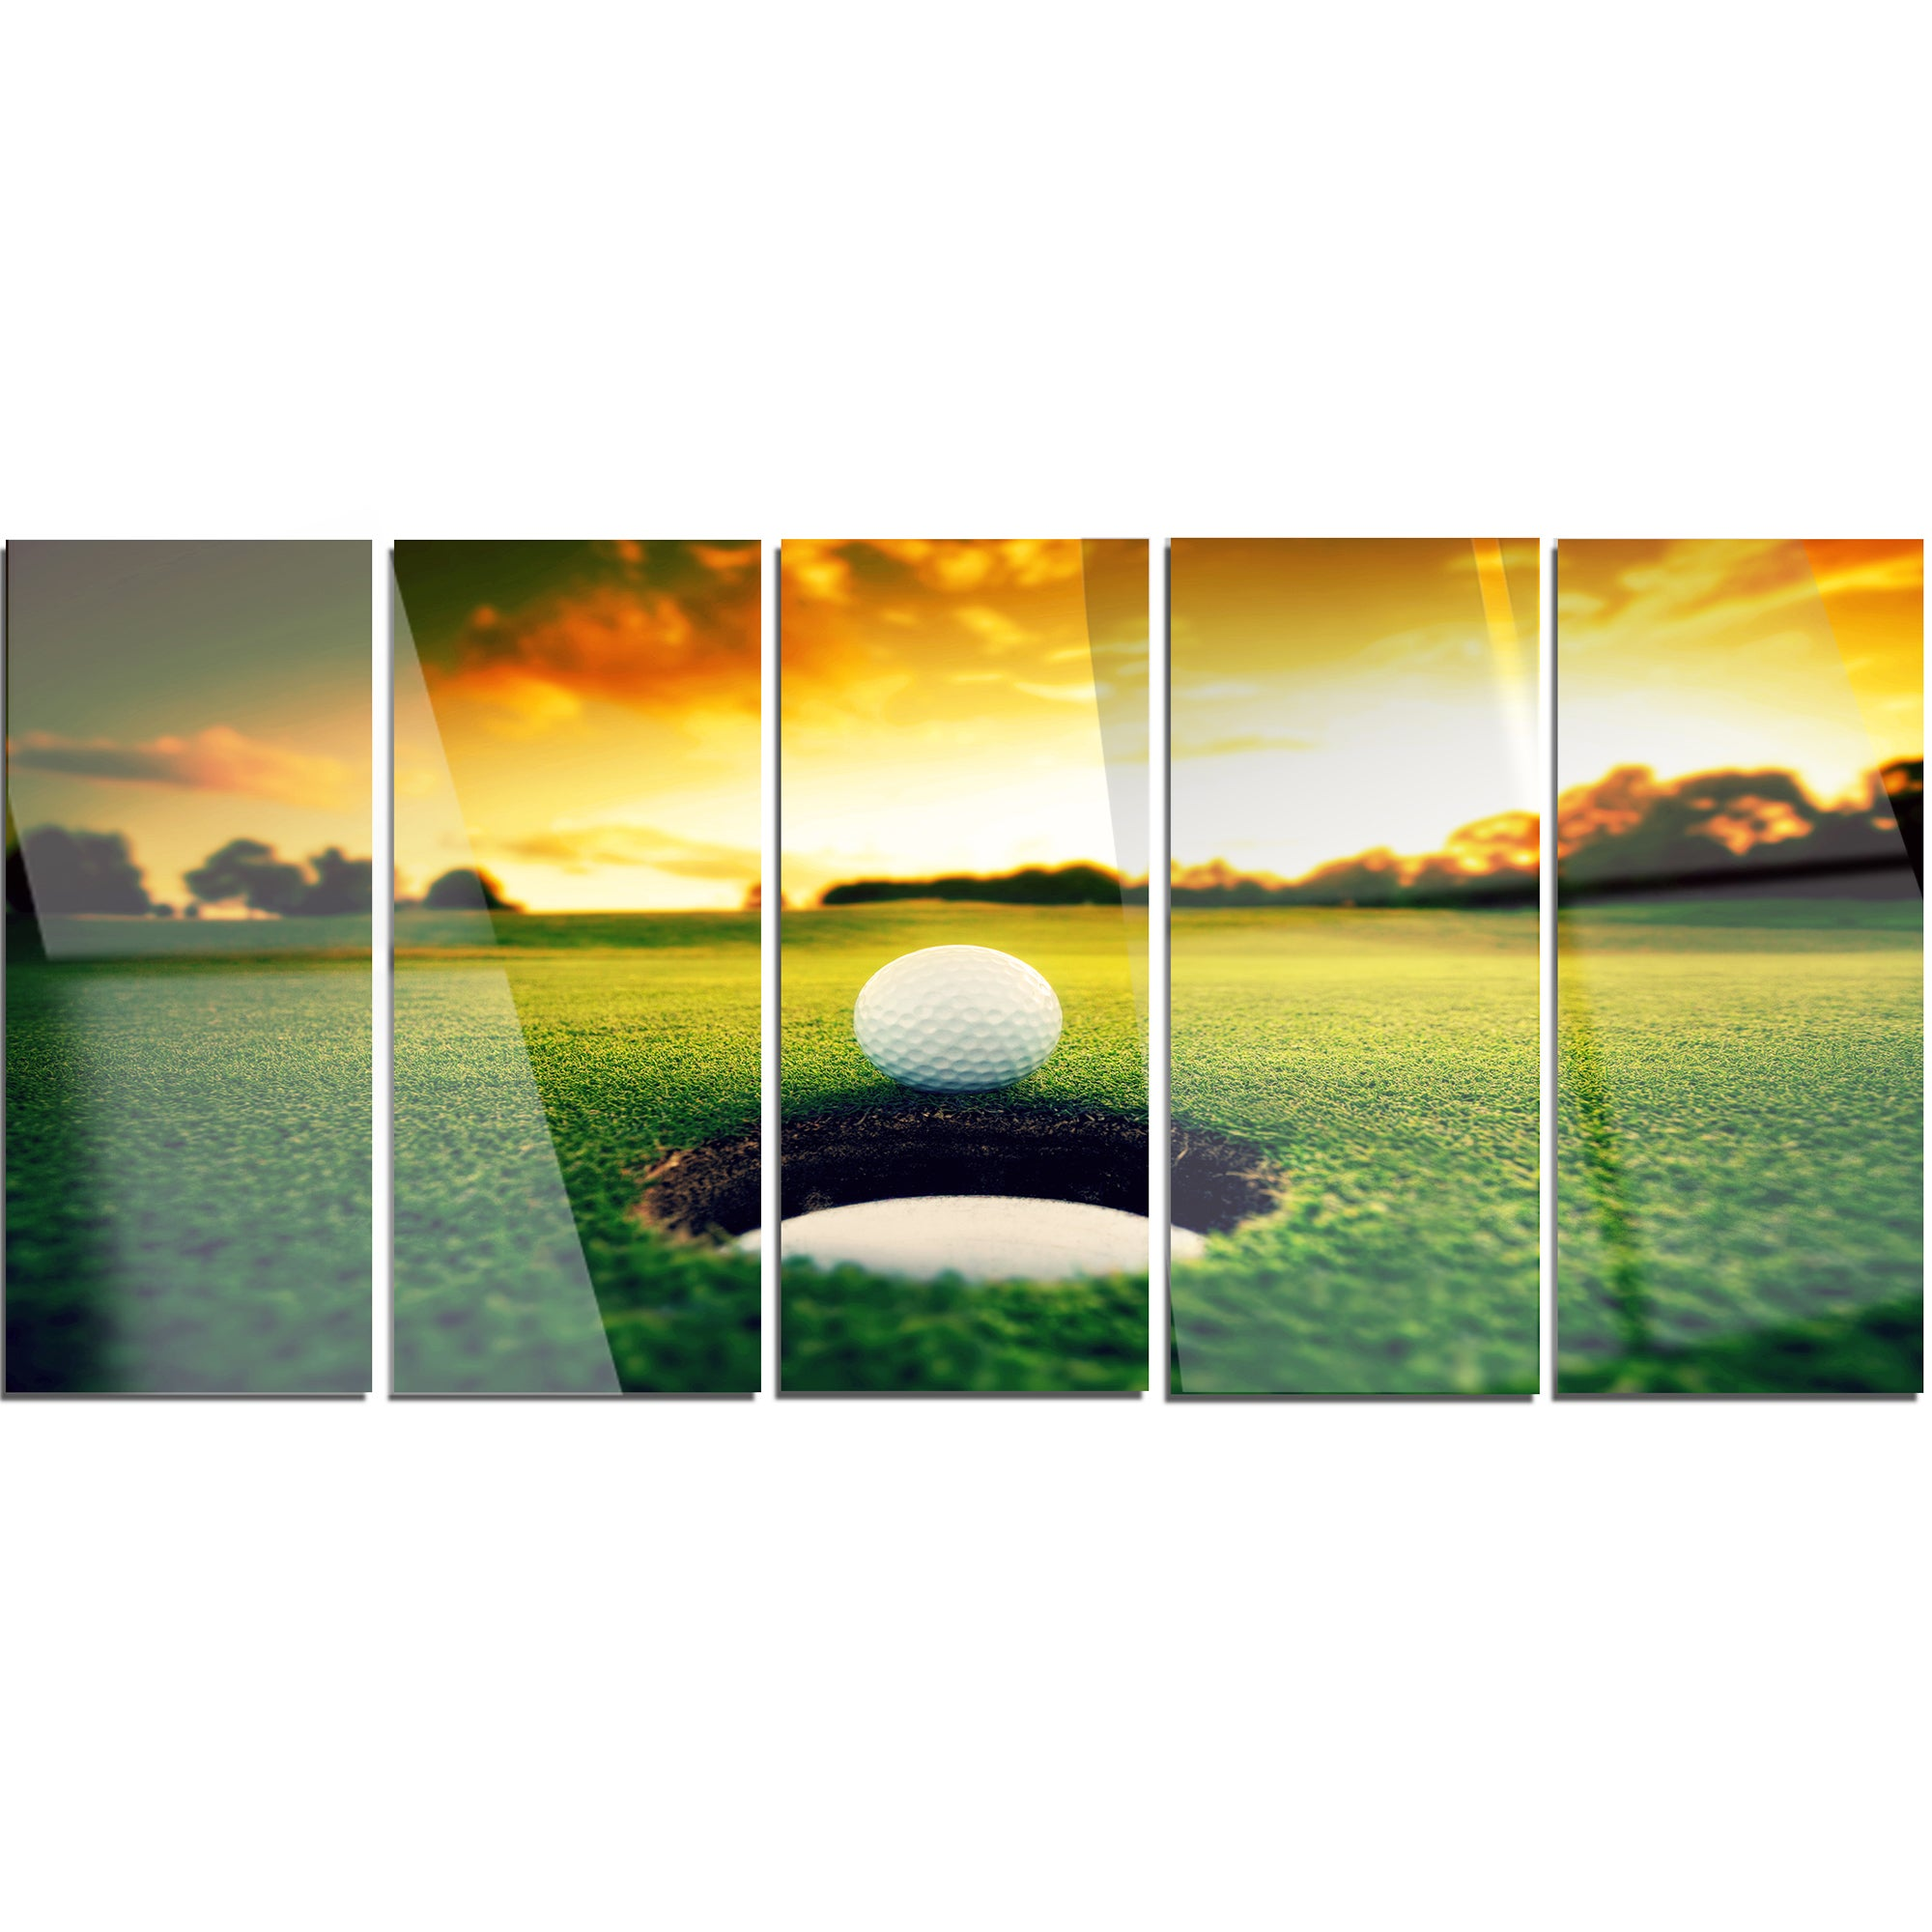 Fantastic Golf Wall Art Ornament   Wall Painting Ideas   Arigatonen.info